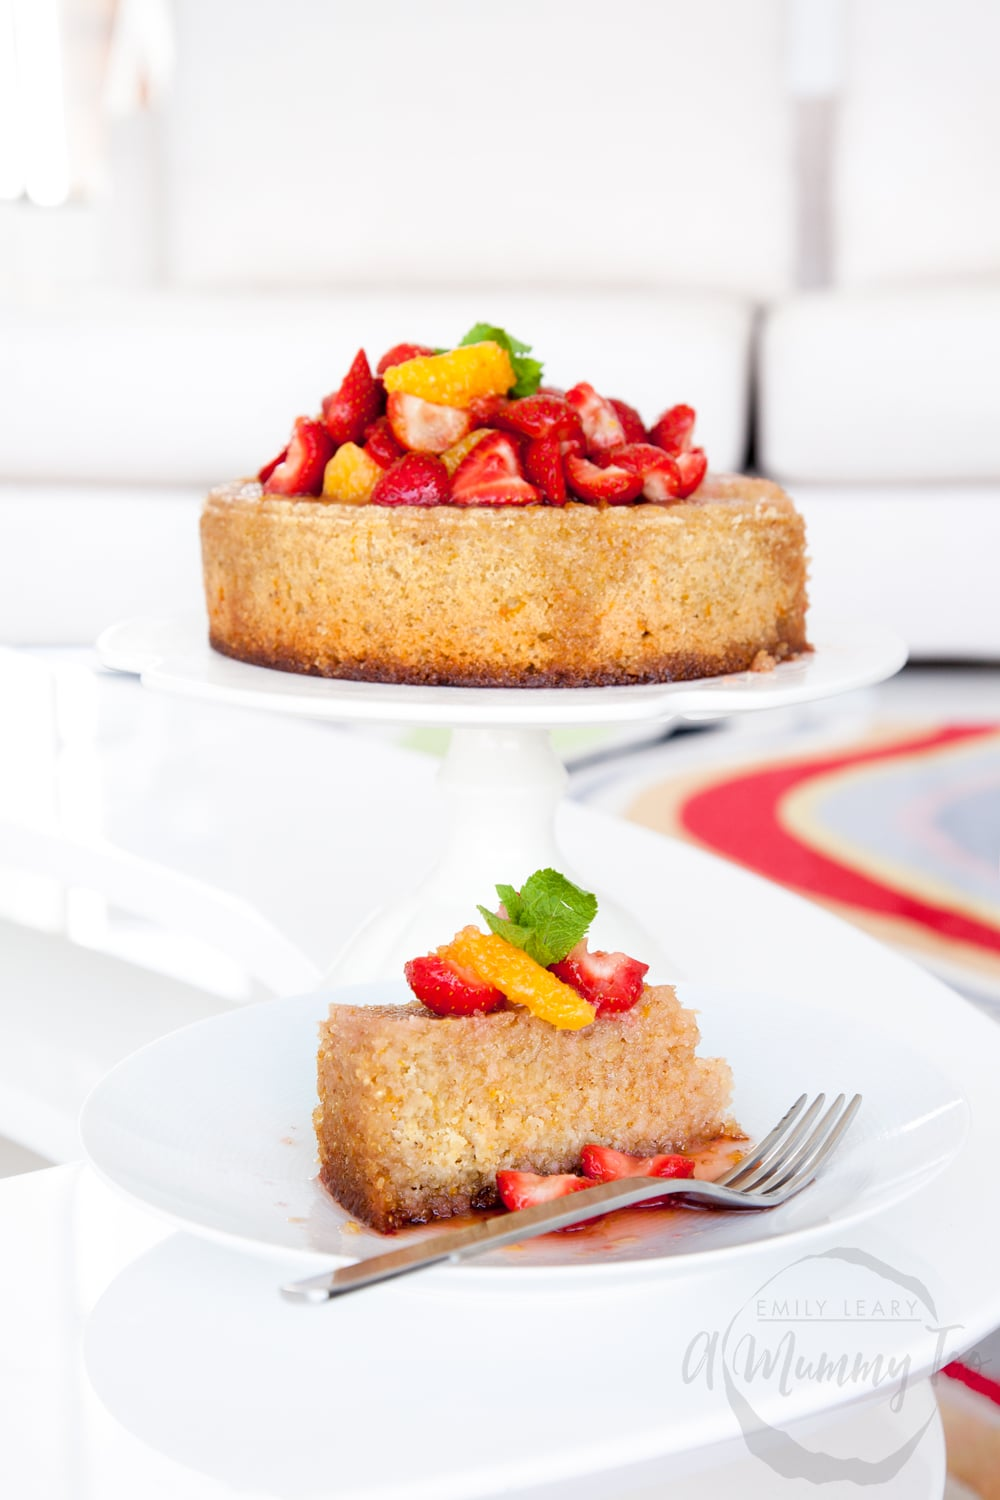 Delicious orange, almond and quinoa cake - a dairy free, gluten free cake made with Pura coconut oil blend